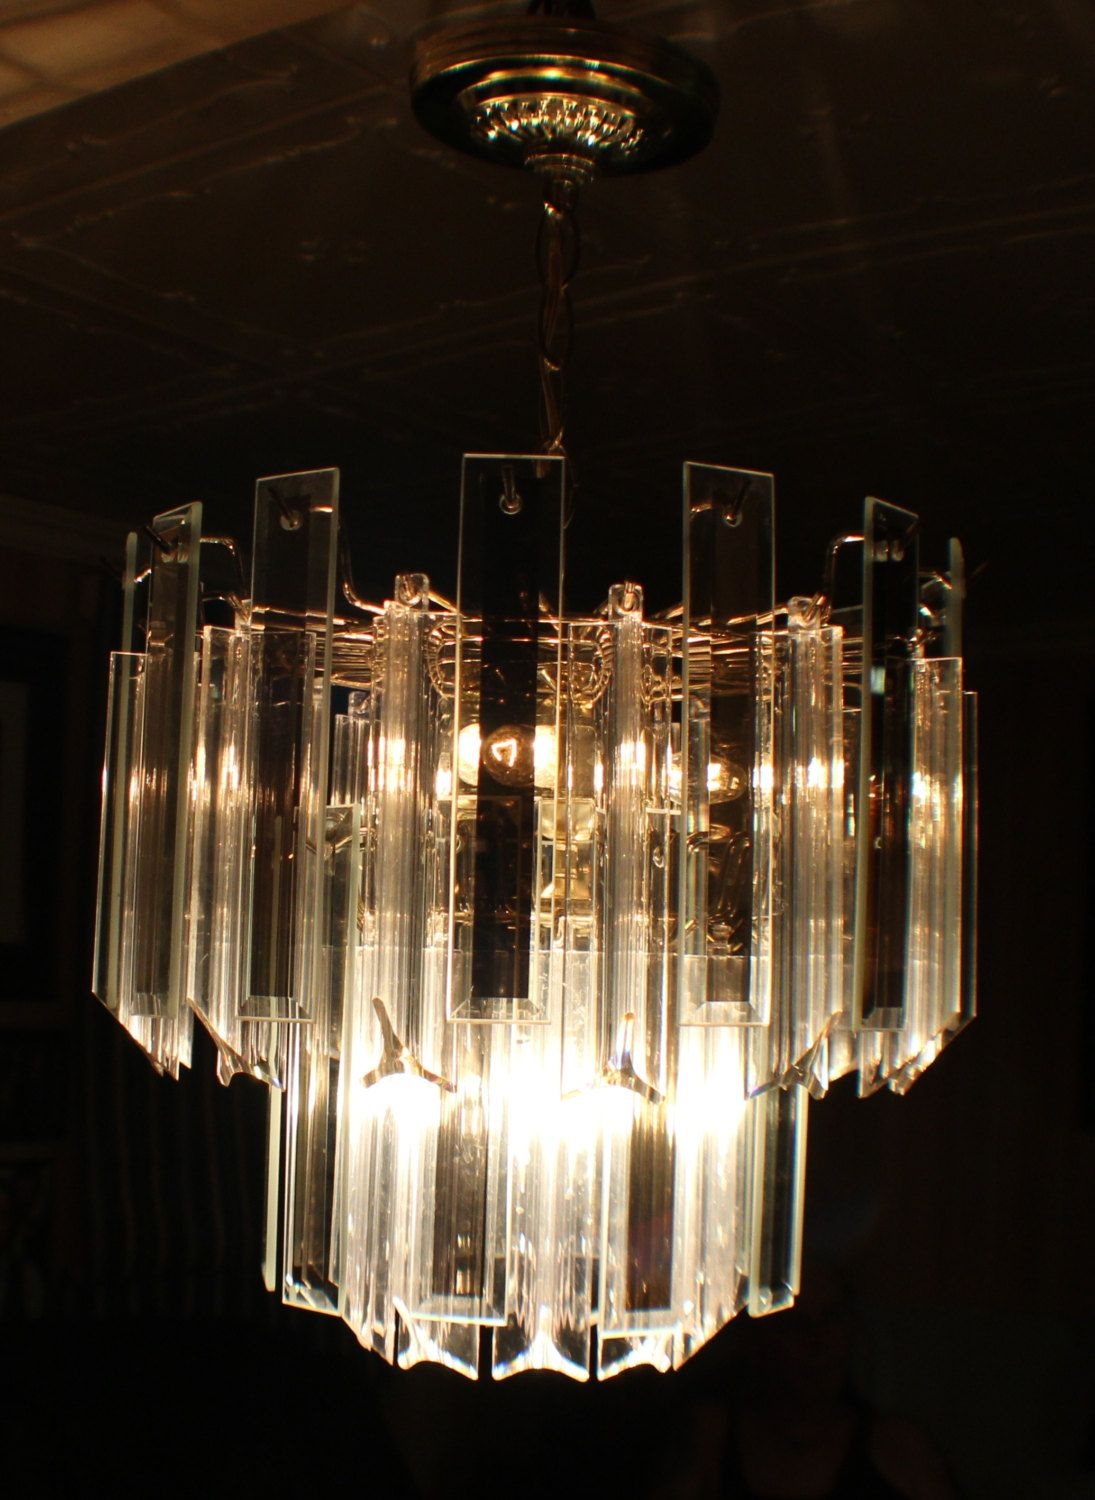 Stunning 48 lucite and smoked beveled glass 2 tiered chain hanging stunning 48 lucite and smoked beveled glass 2 tiered chain hanging chandelier brass finish hanging chandelierchandeliersbeveled arubaitofo Gallery